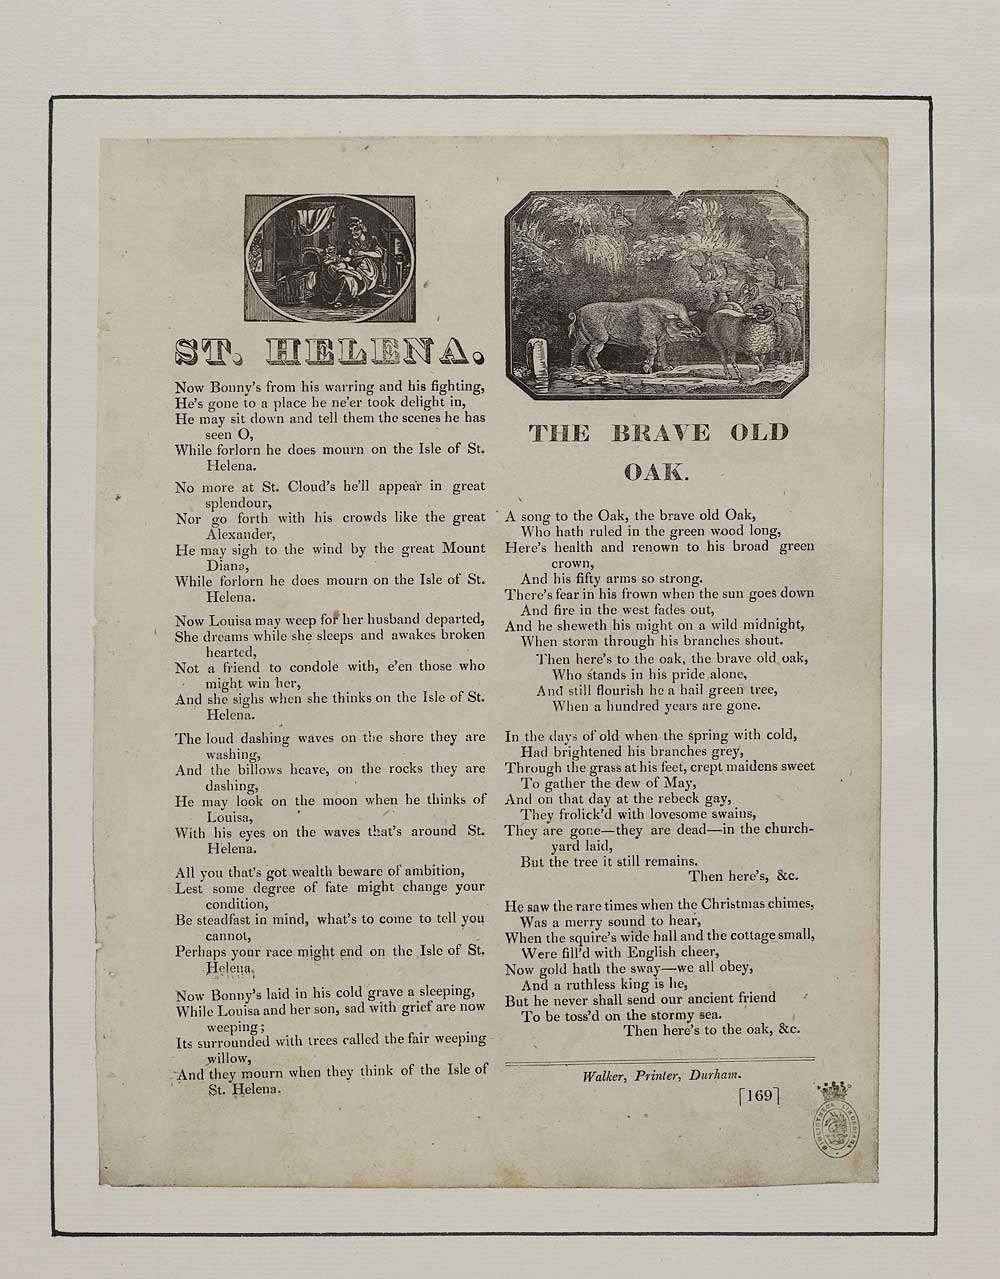 St. Helena - broadside ballad from the National Library of Scotland